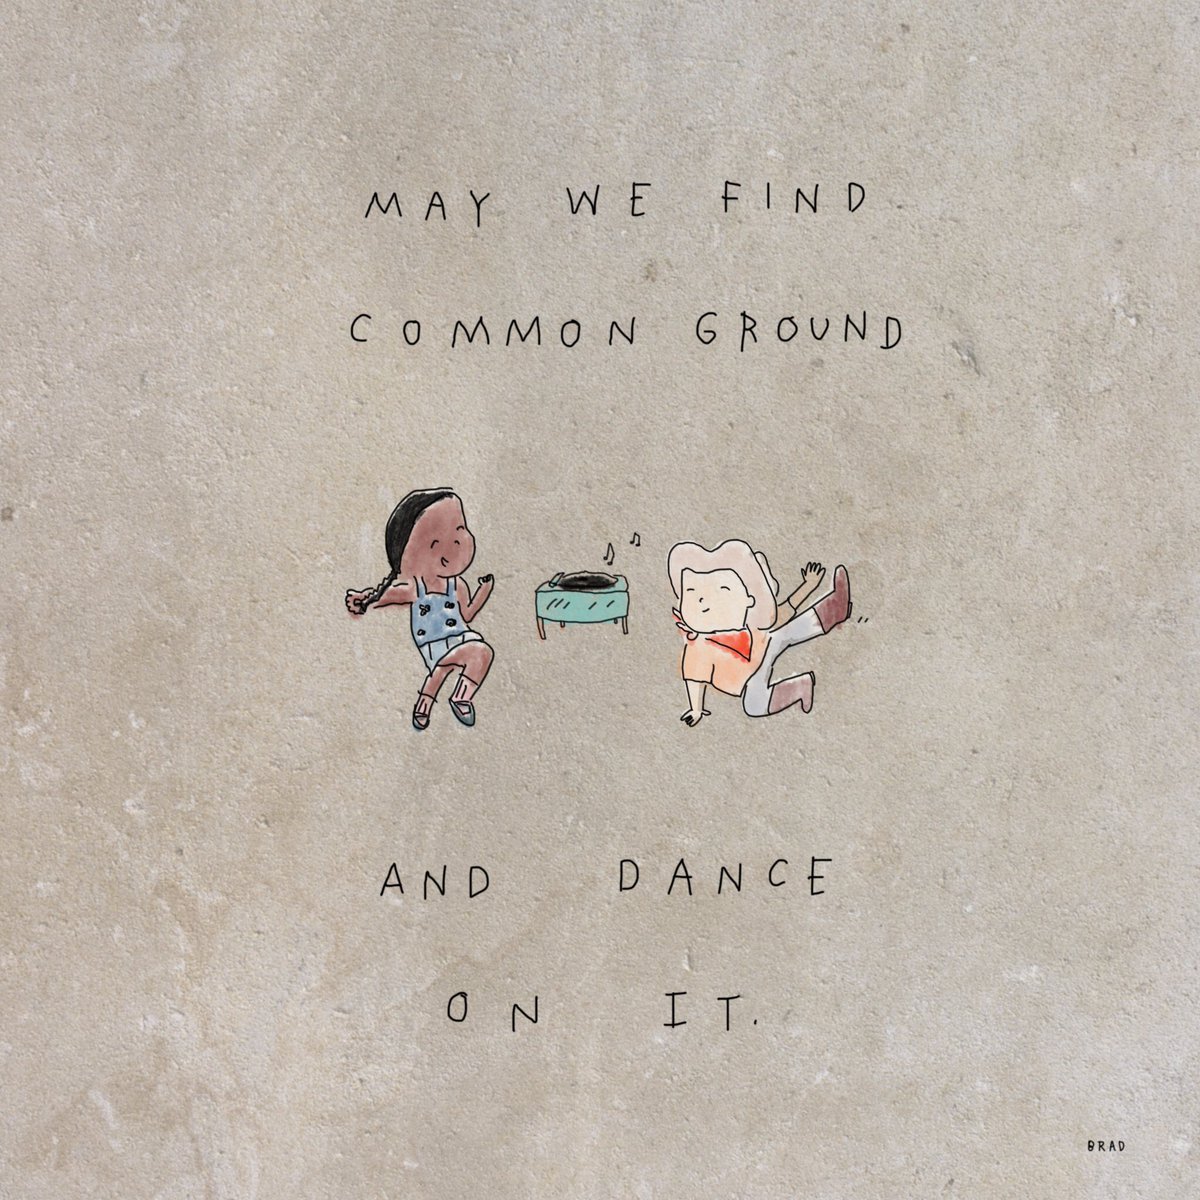 May we find common ground and dance on it. instagram.com/p/Bp4P0Bggs_P/